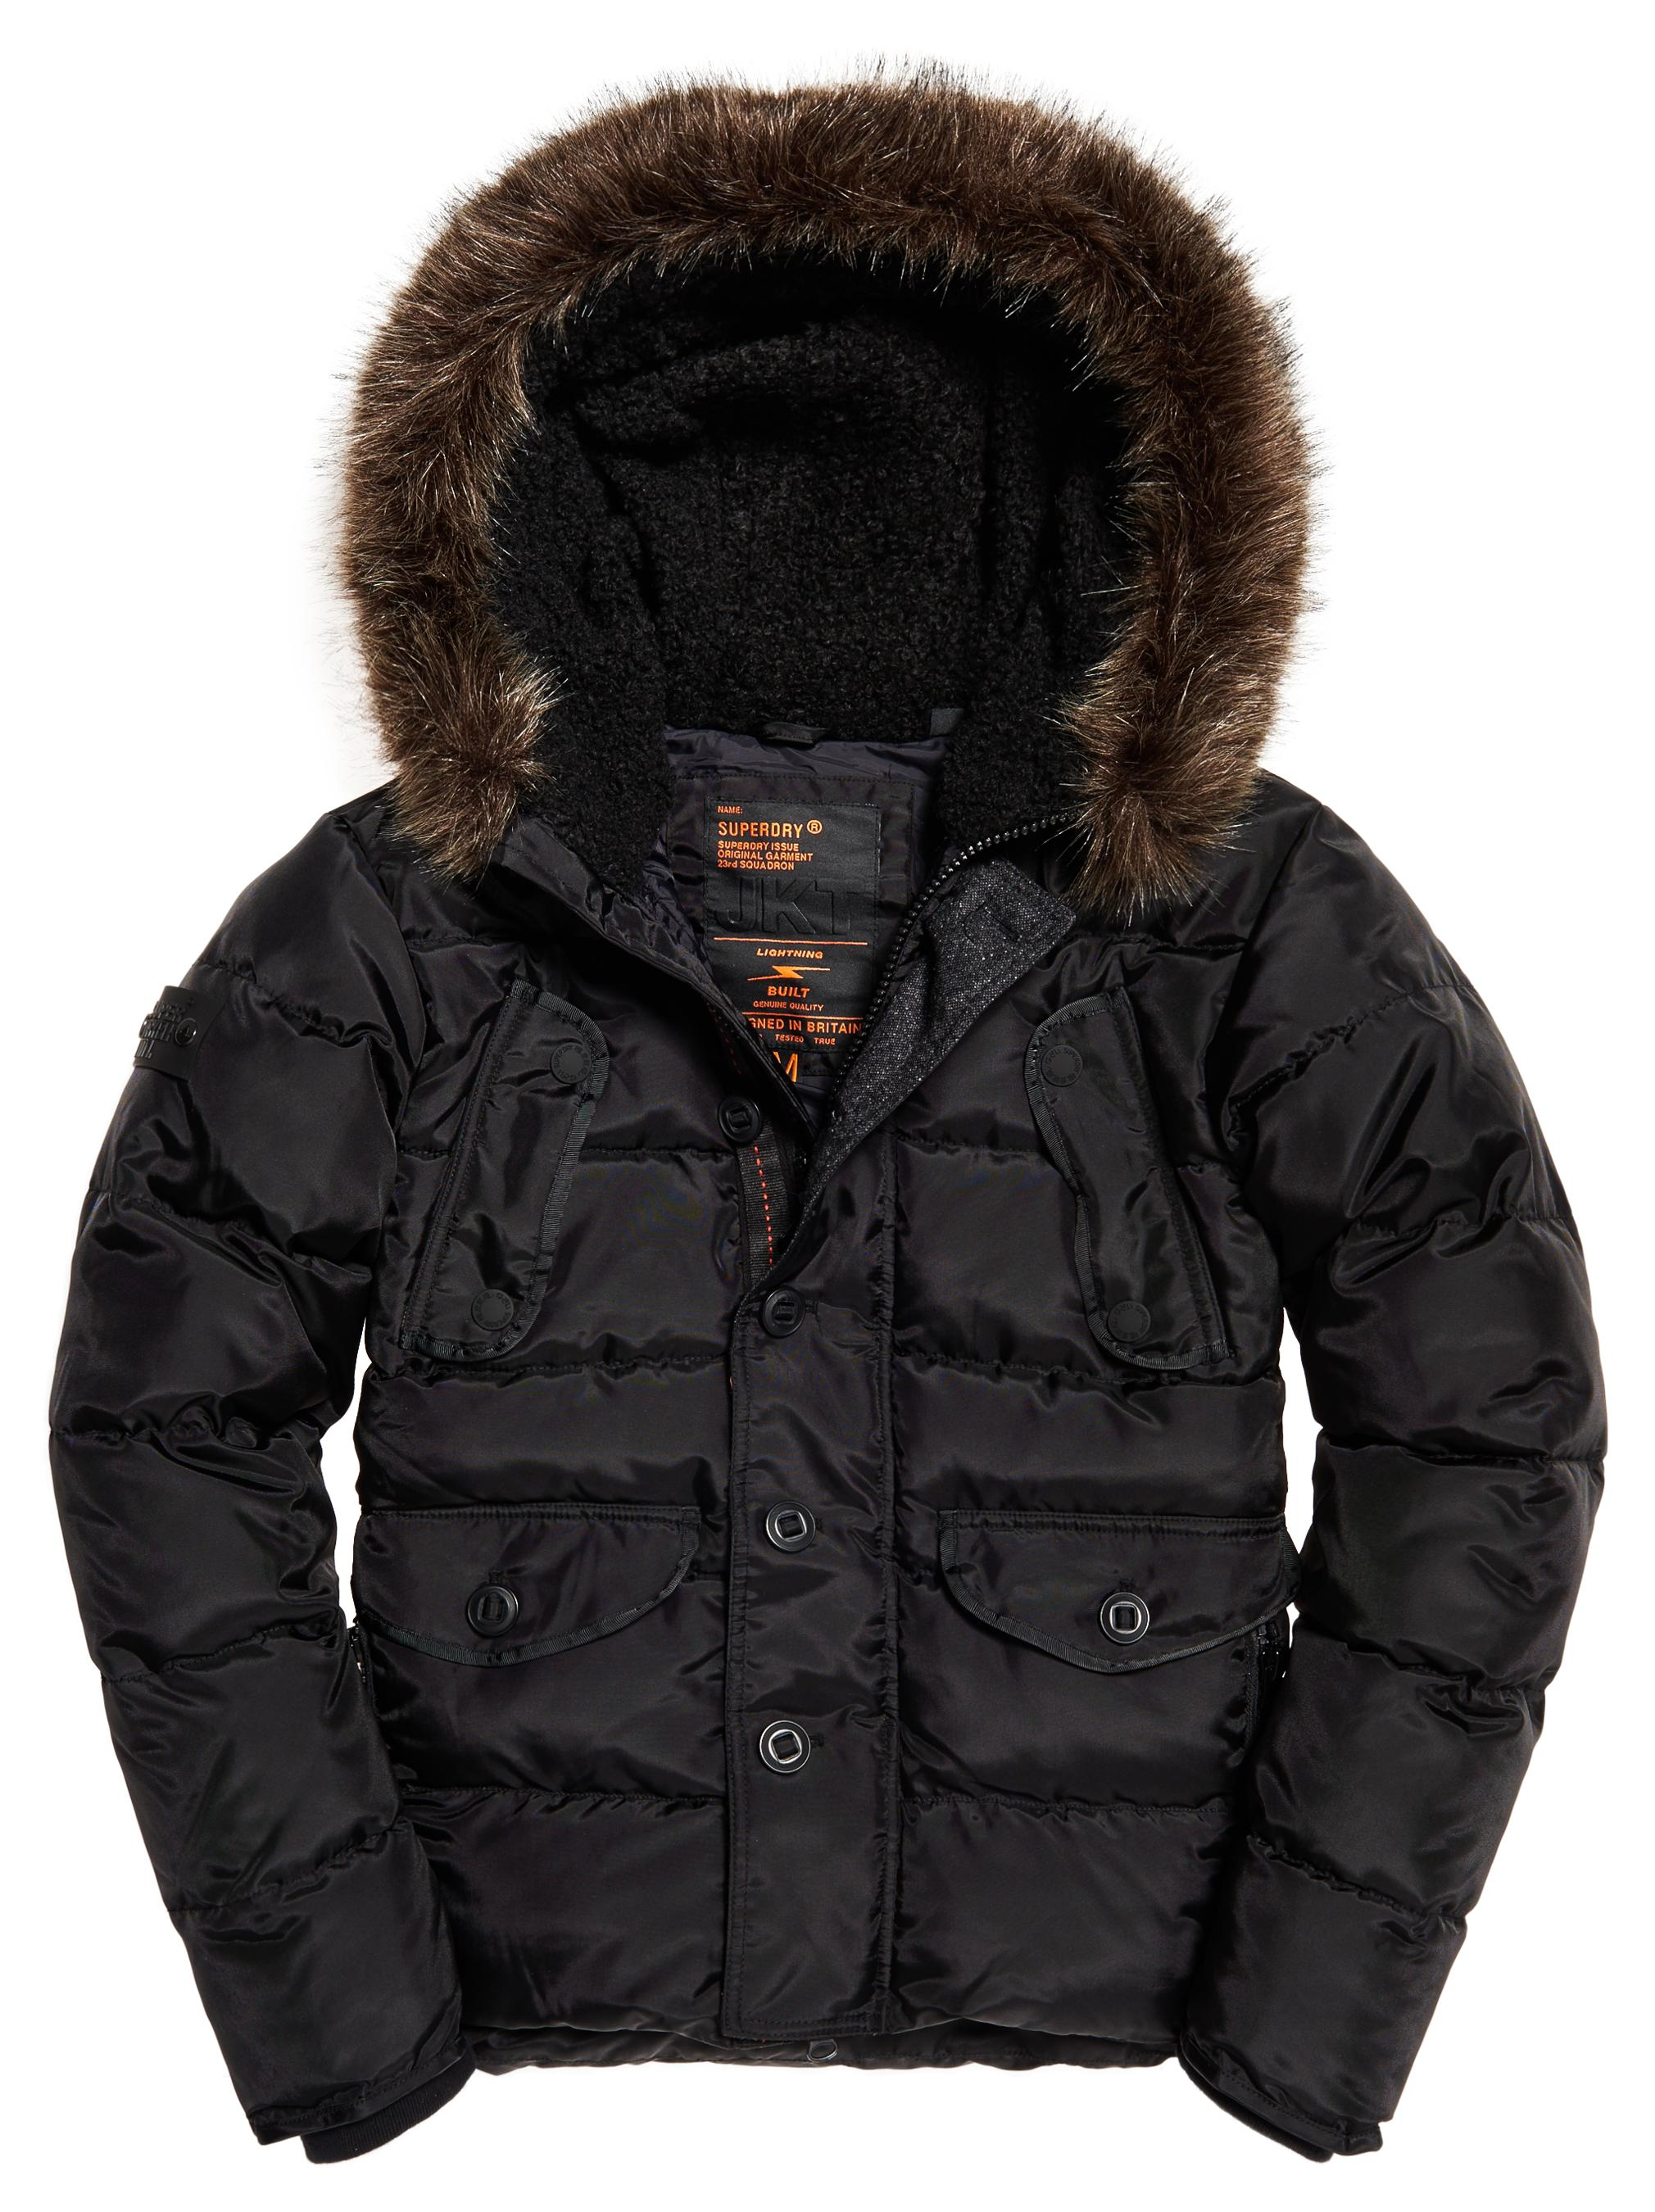 Superdry Chinook Jacket  £124.99 - 179.99€ www.superdry.com.jpg